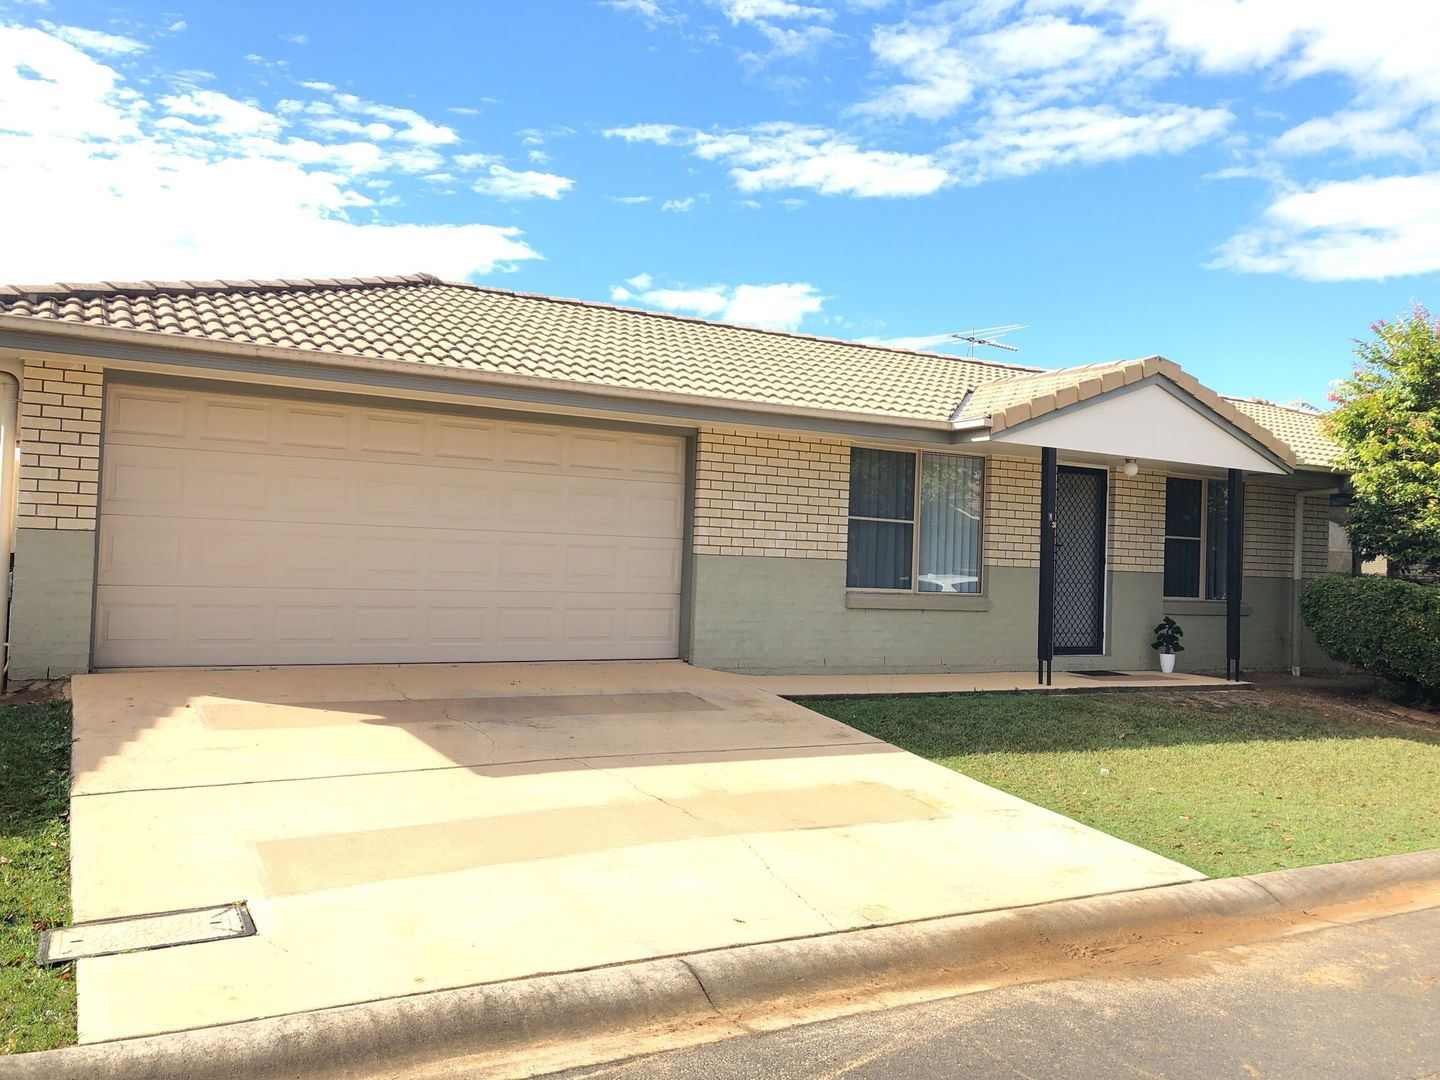 13/114-116 Del Rosso Road, Caboolture QLD 4510, Image 0